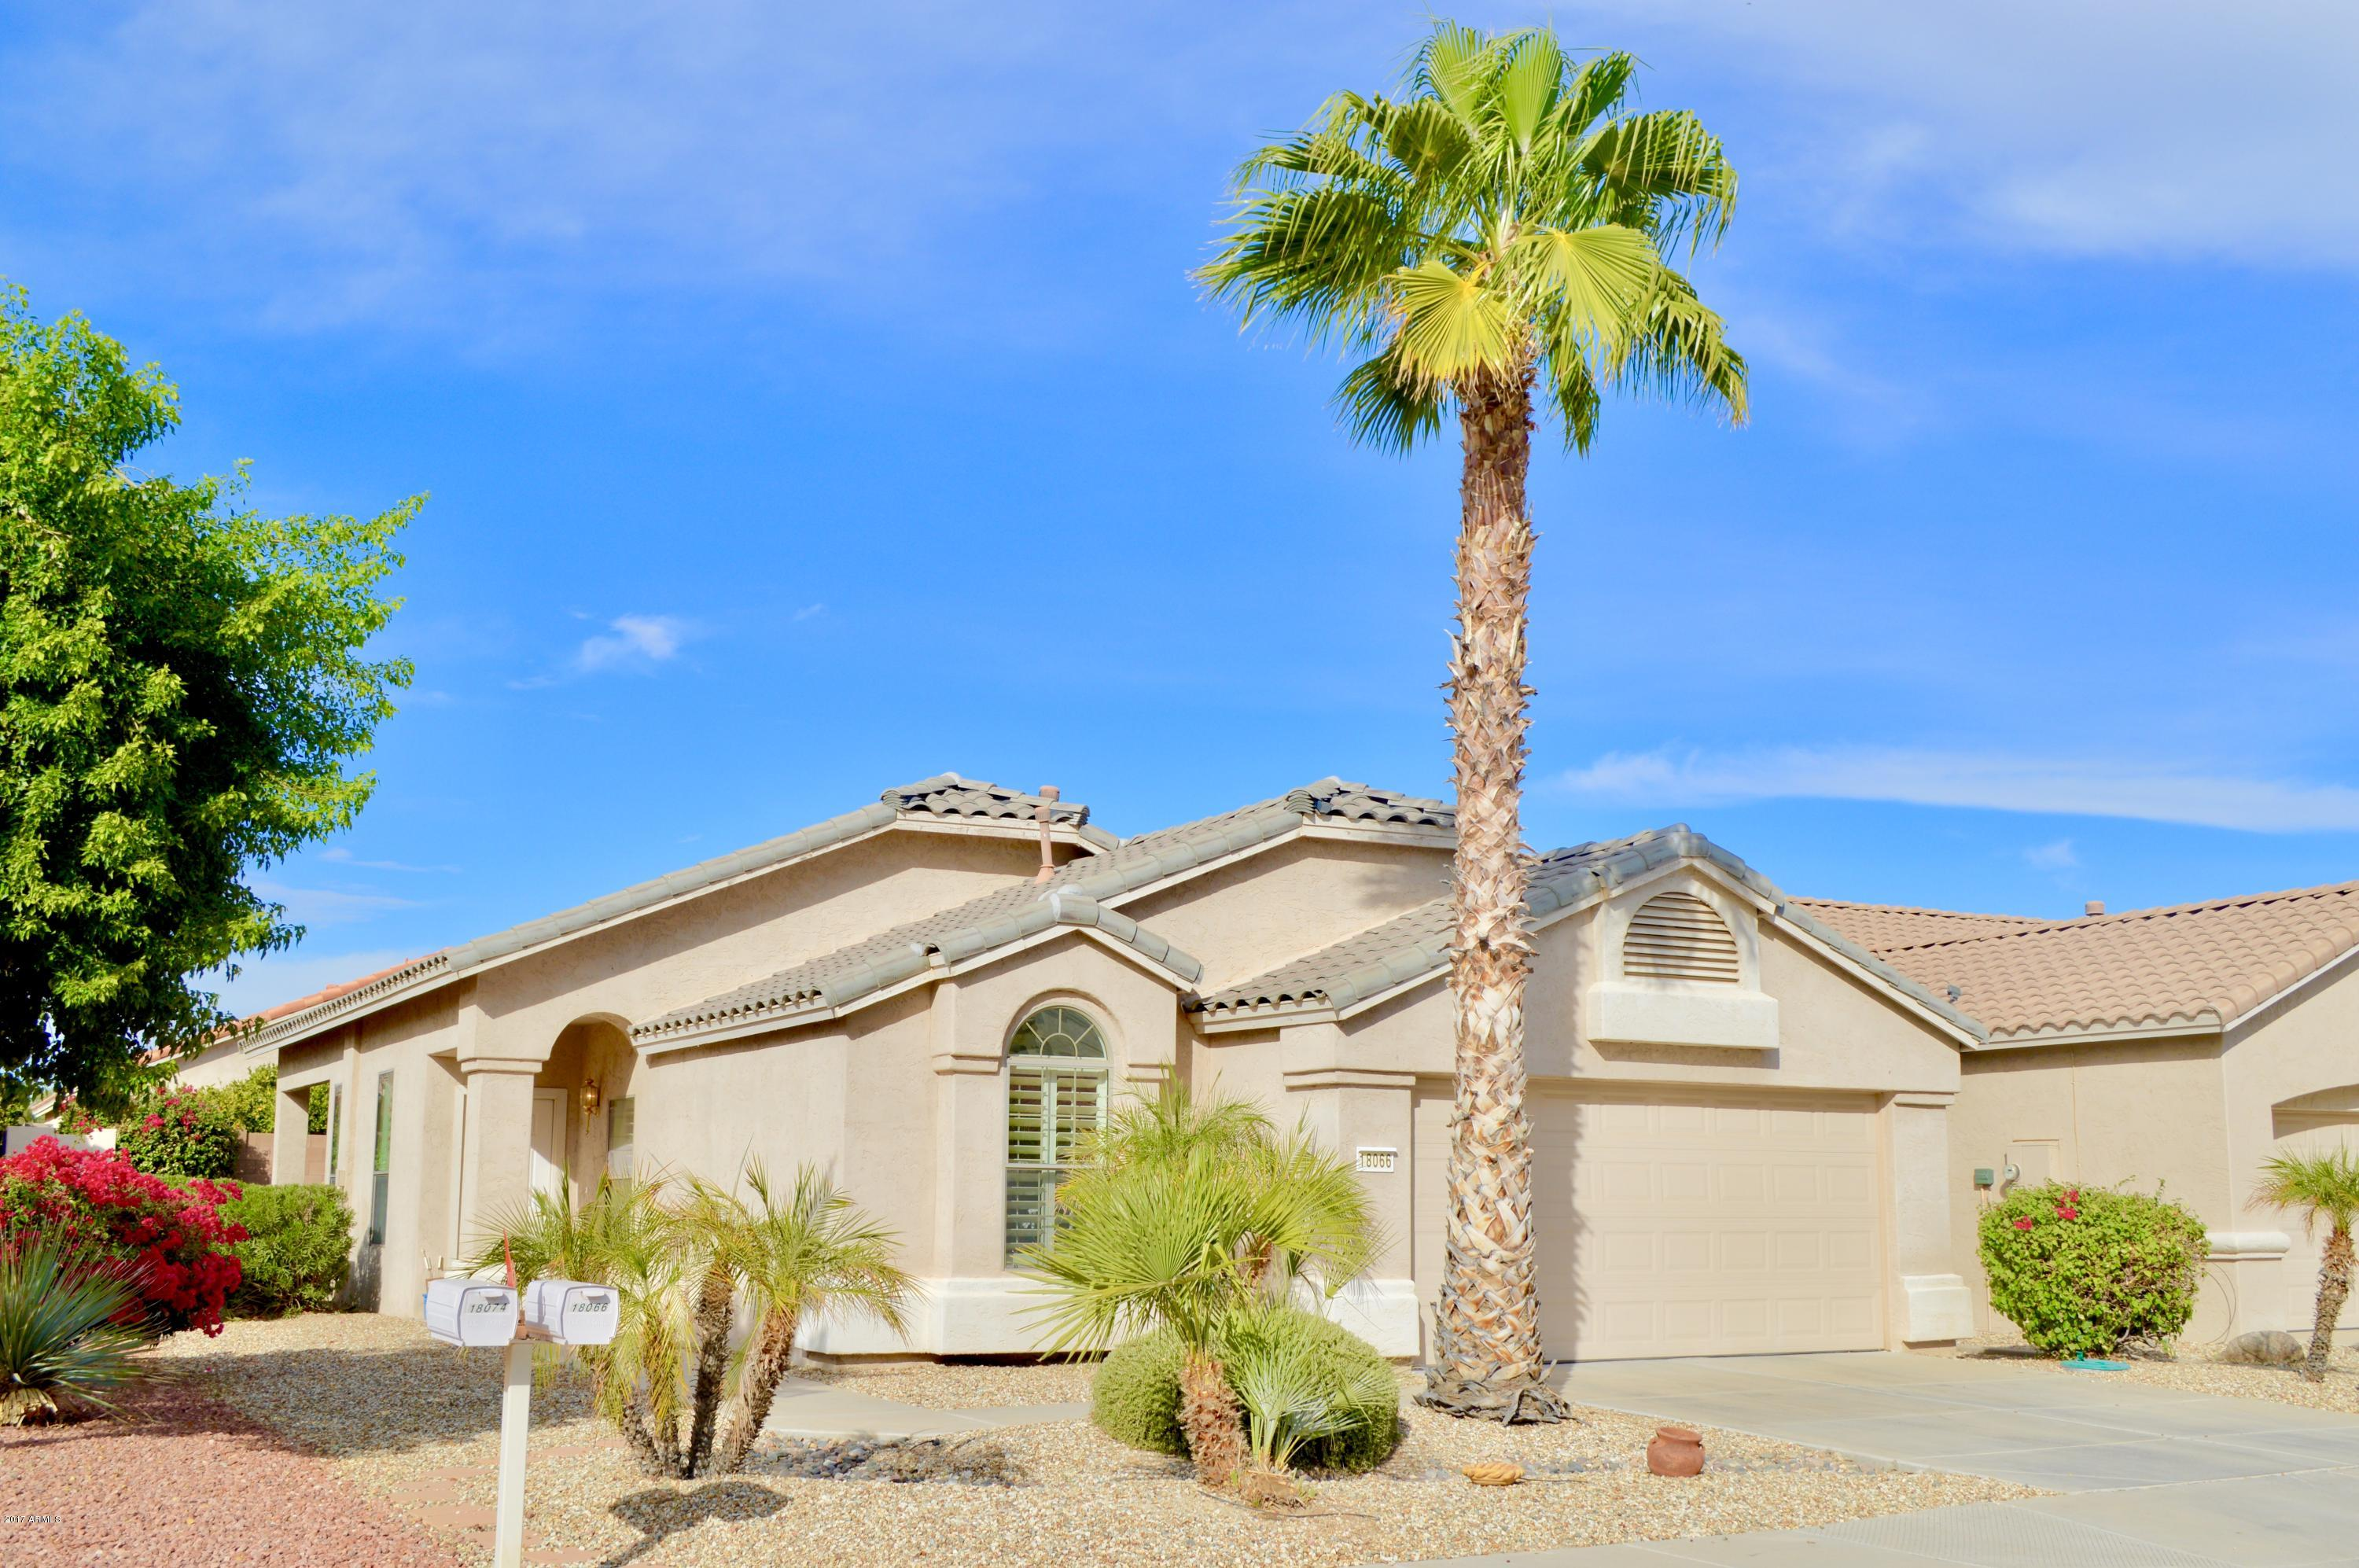 18066 W ADDIE LANE, SURPRISE, AZ 85374